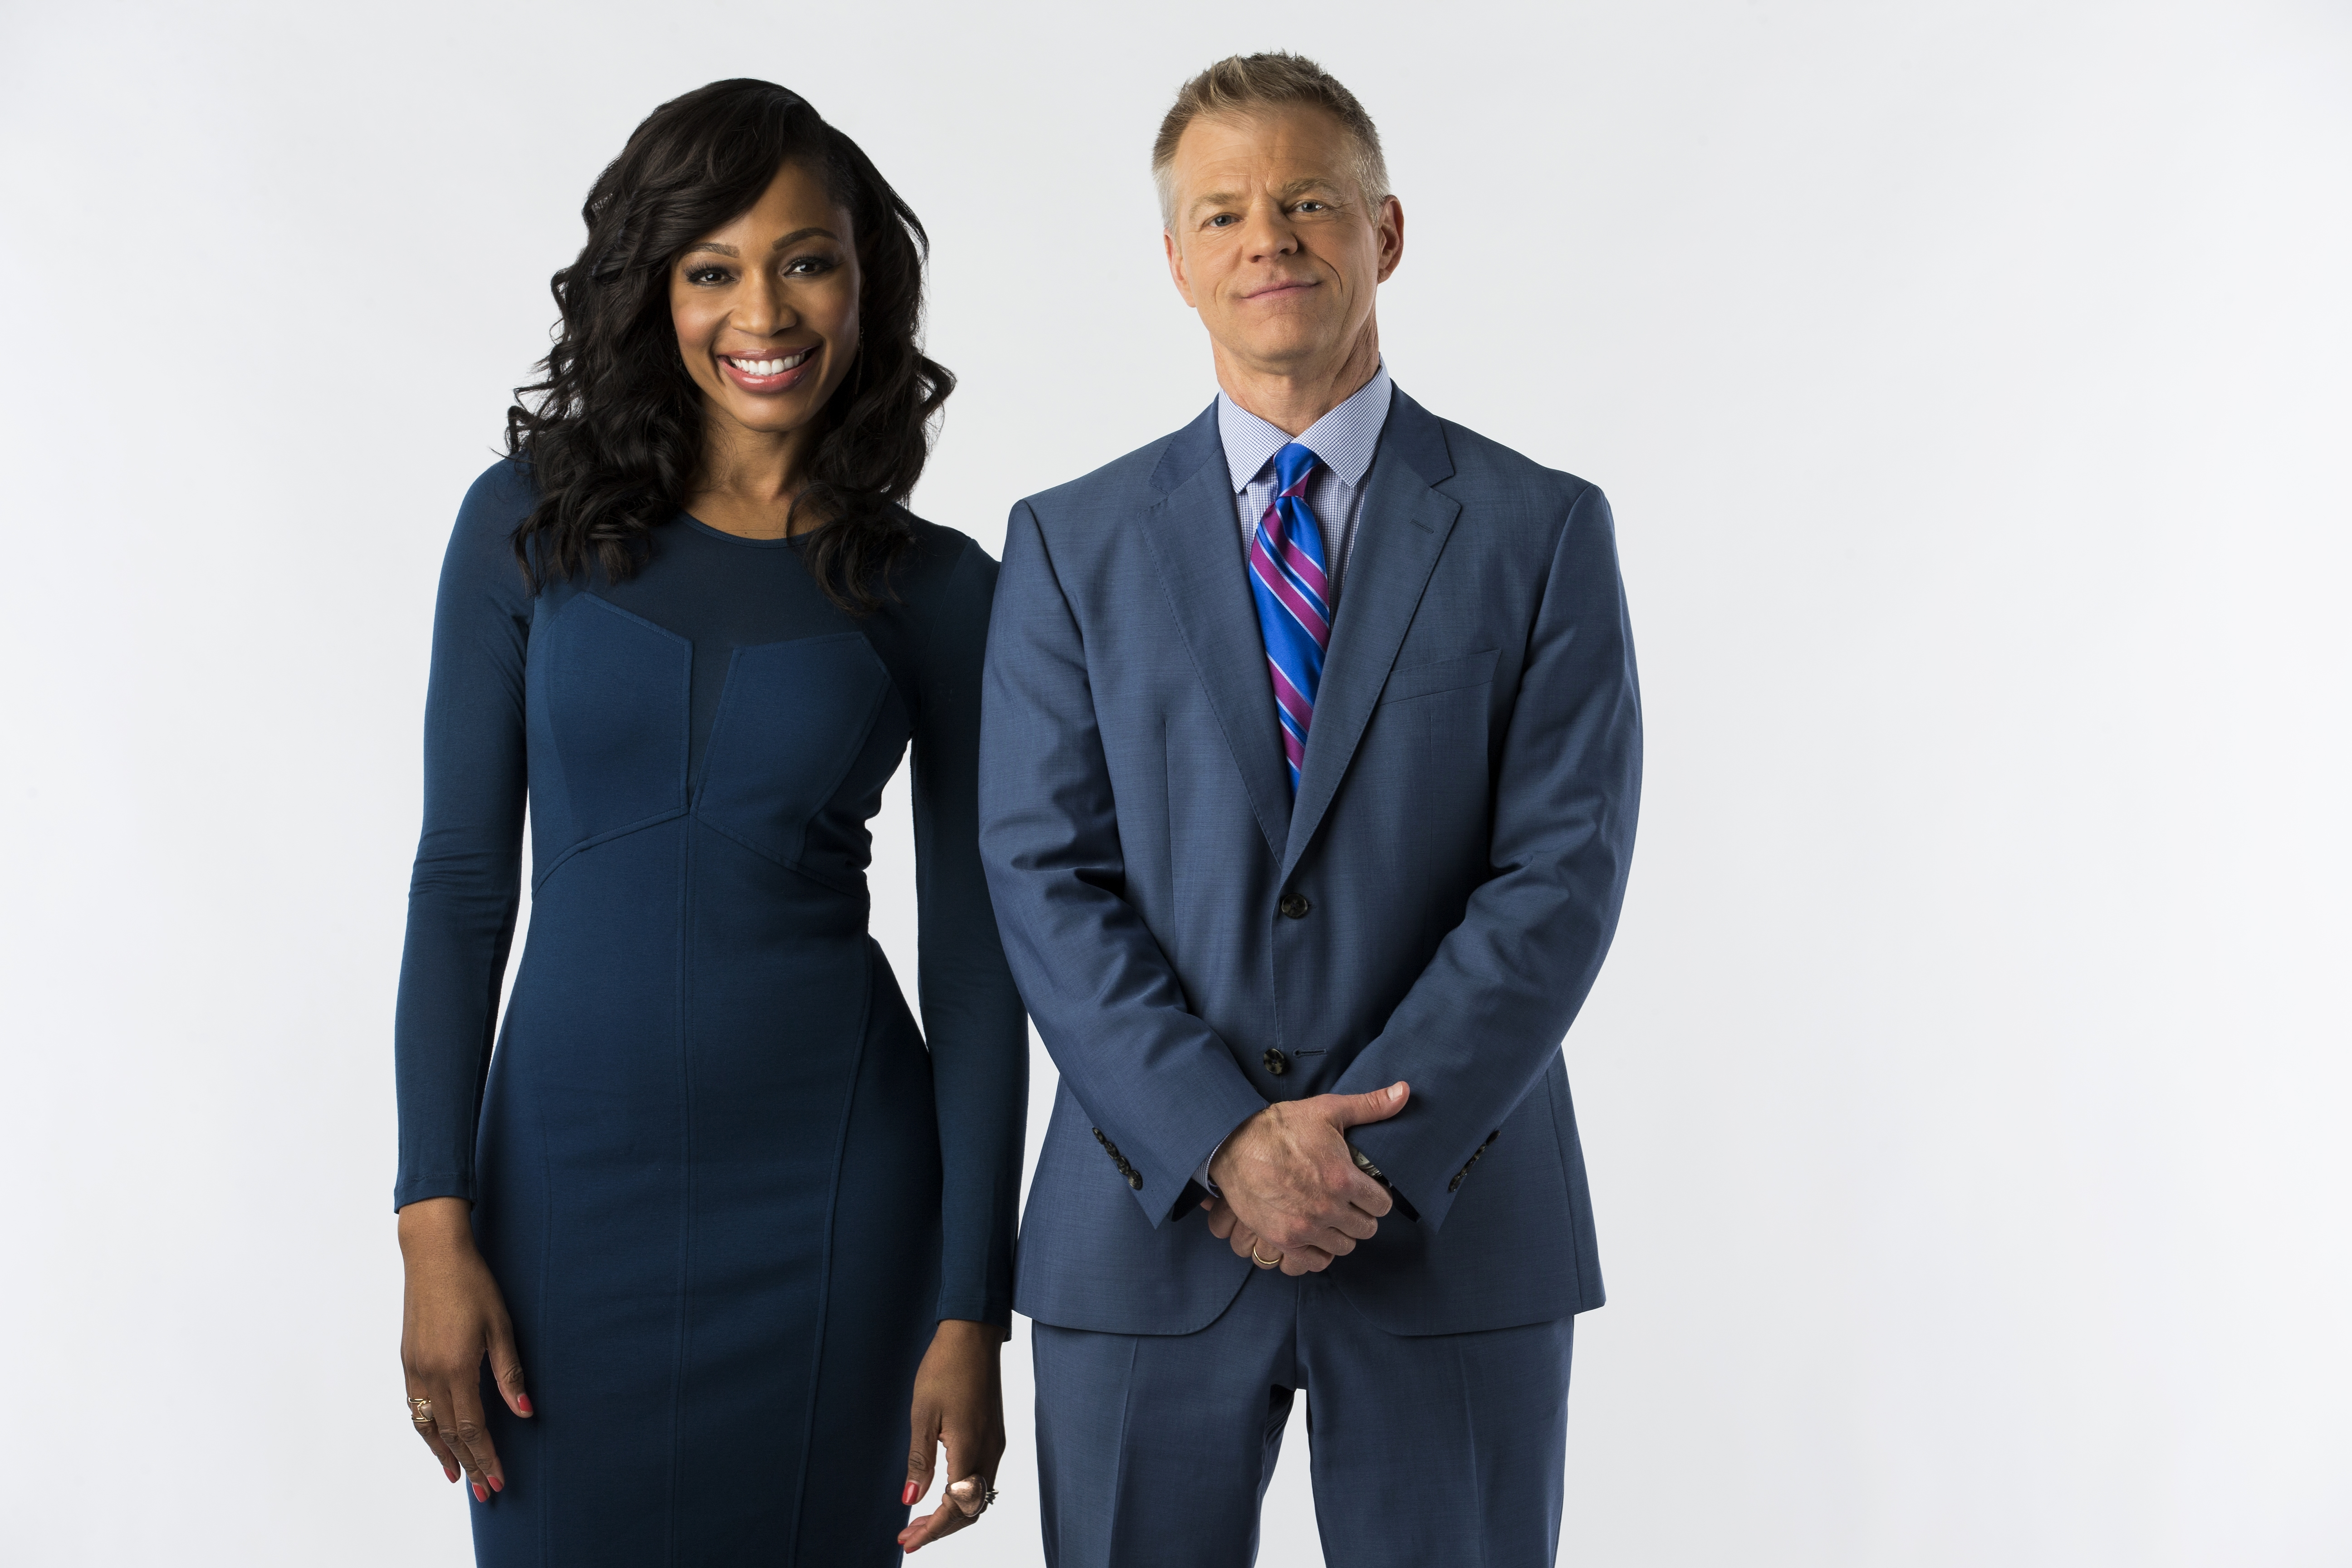 A newly signed multi year deal will keep cari champion at espn where